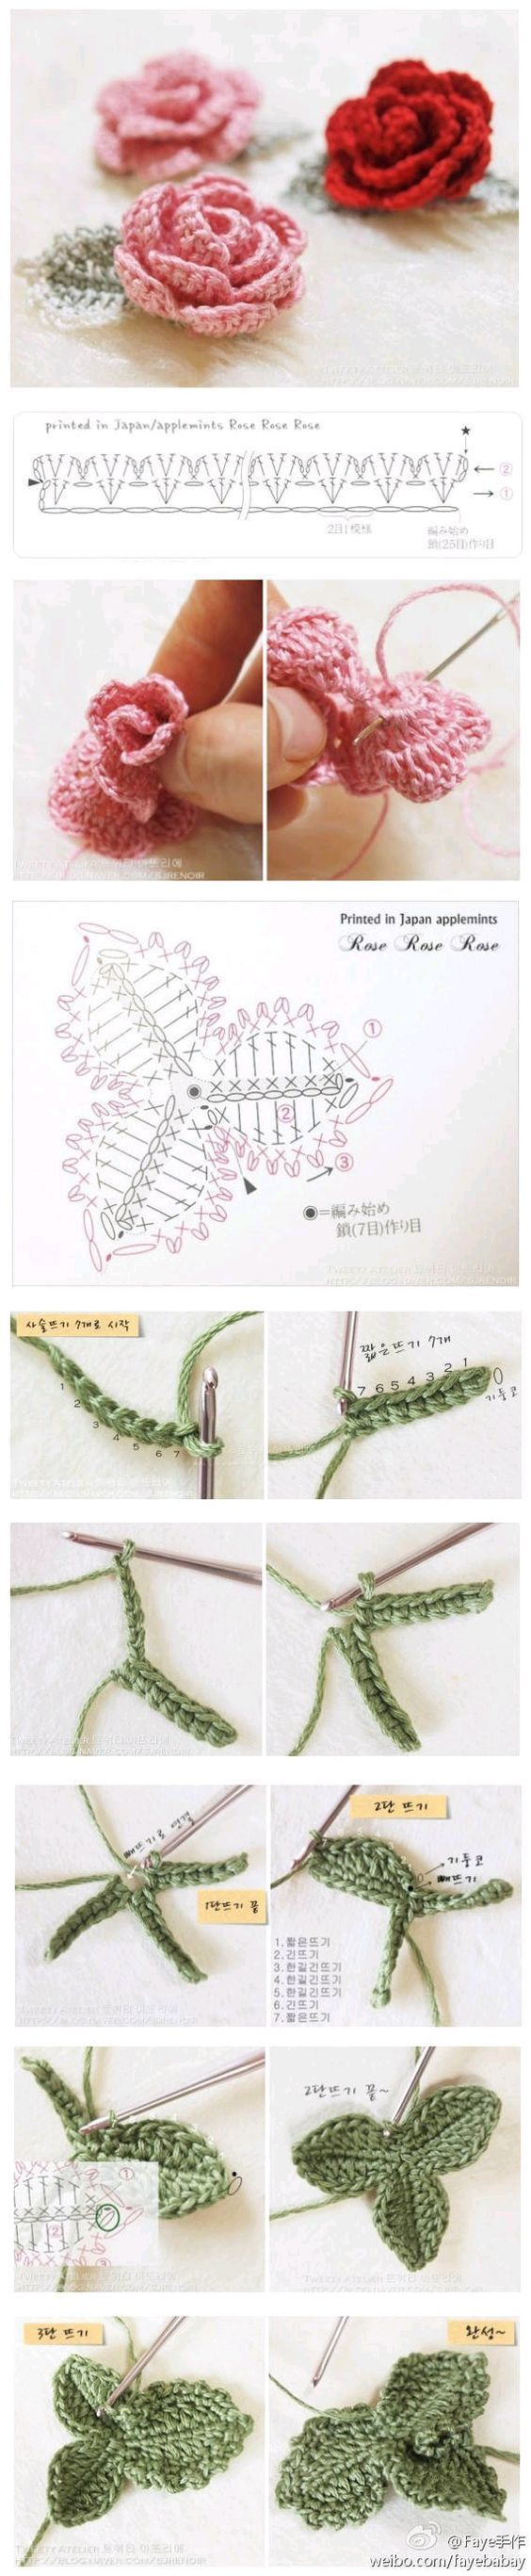 Crochet rose and leaf ♥LCF-MRS♥ with diagram and picture instructions.: